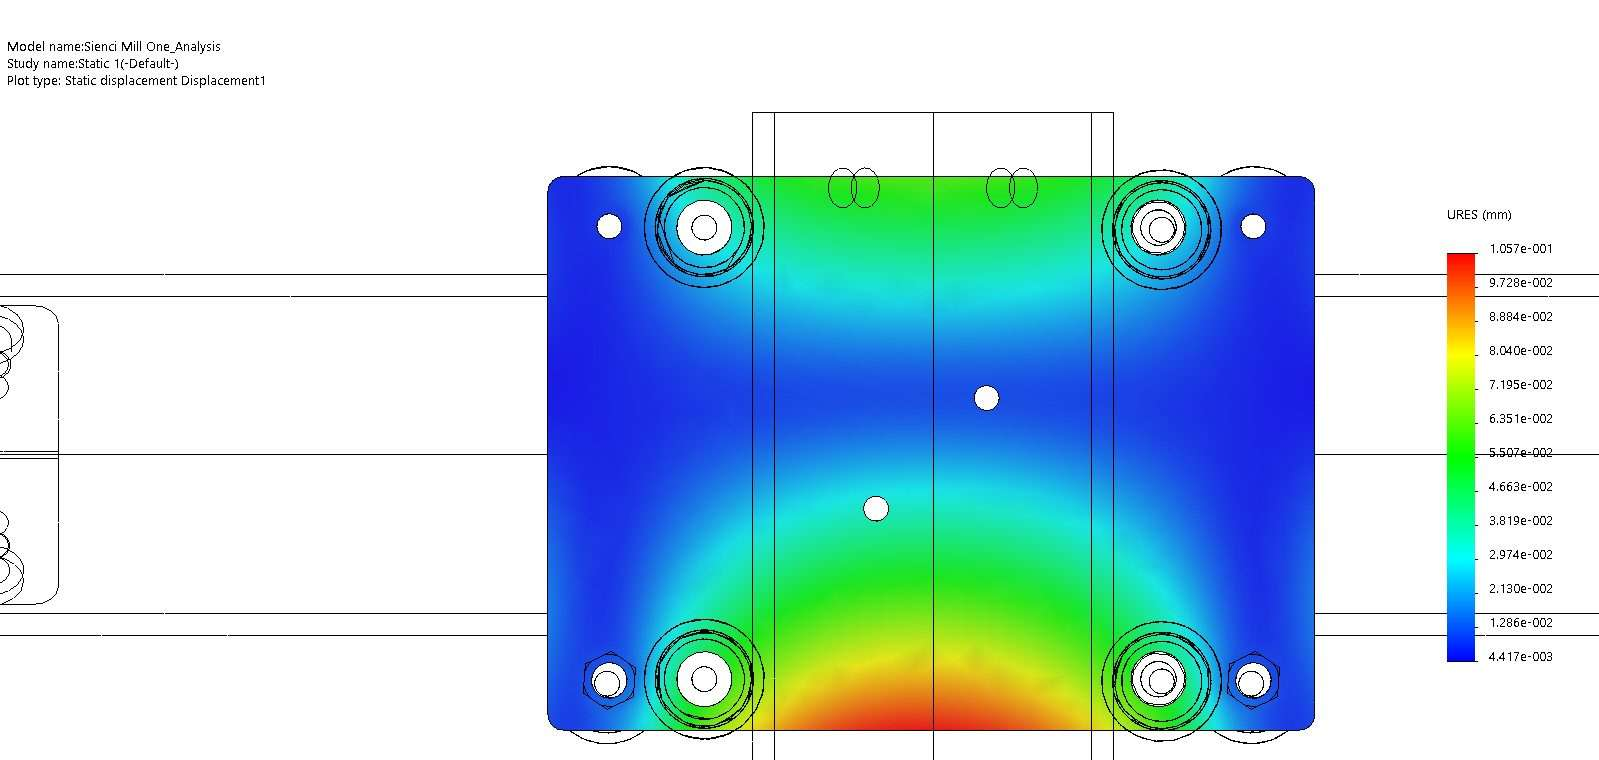 Using FEA to find maximum deflection in the XZ gantry